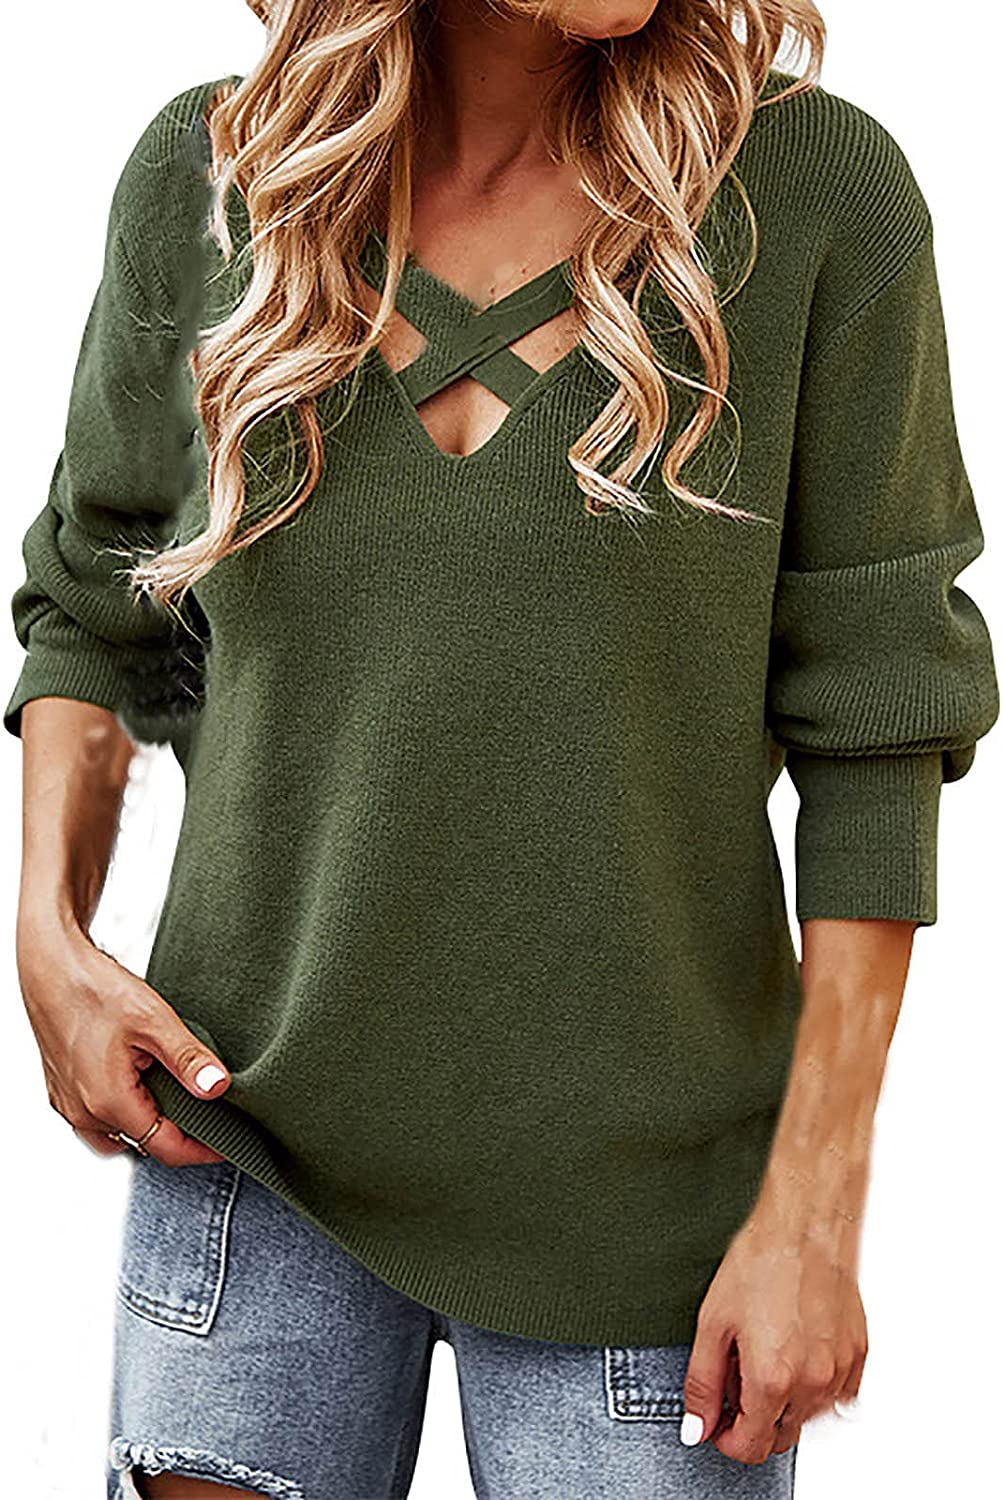 Akklian Long Sleeve Shirts for Women Solid Tees Autumn Casual Sexy V Neck Cross Strap Fashion Sweater Blouse Tunic Tops